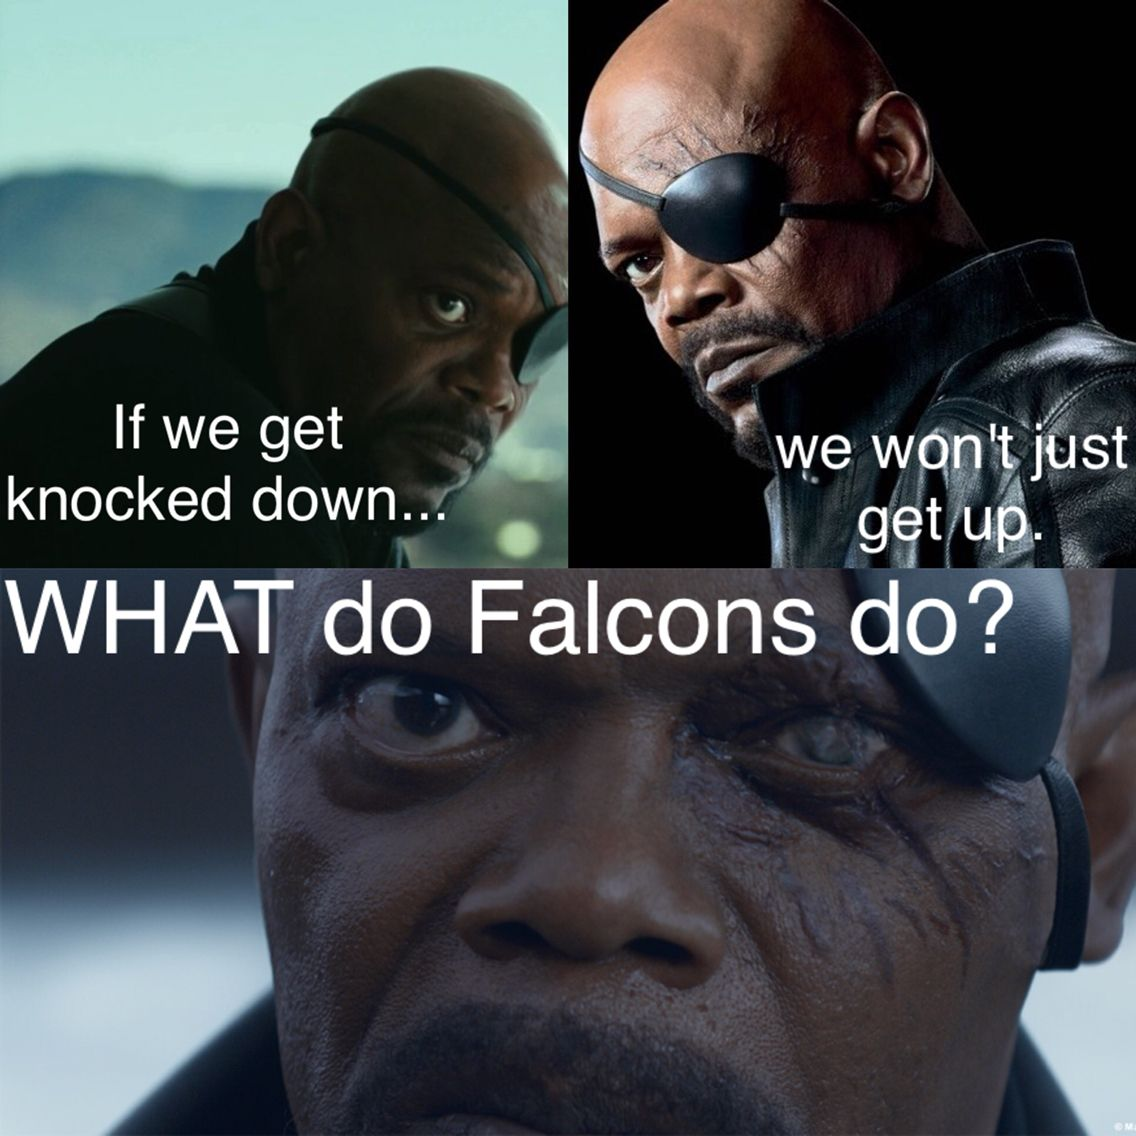 just a falcons meme i made in my spare time enjoy quinning just a falcons meme i made in my spare time enjoy quinning